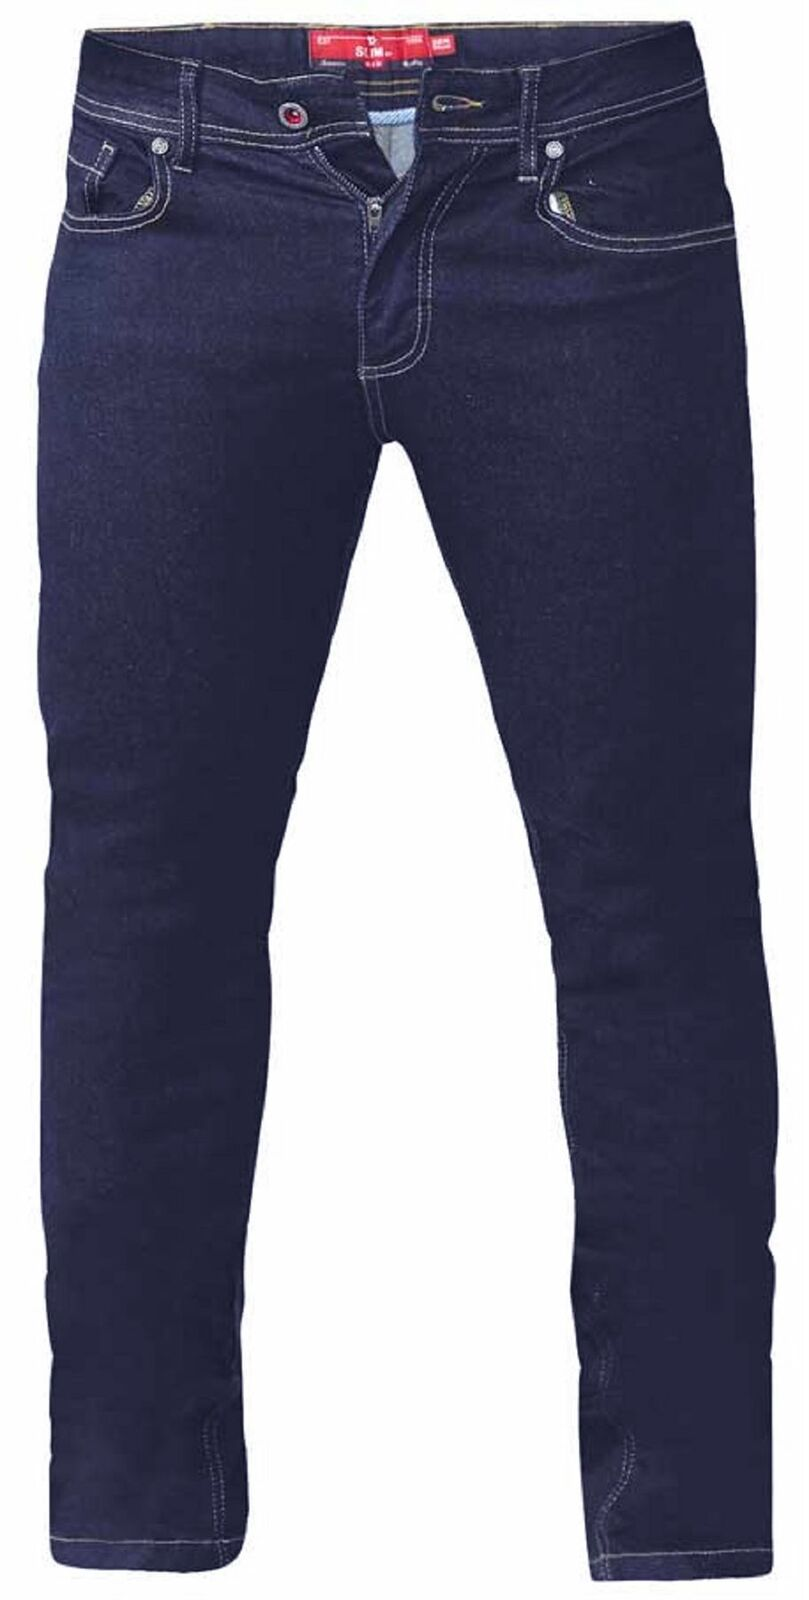 D555 Mens Big Size Tapered Fit Stretch Jeans In Indigo (Cedric)